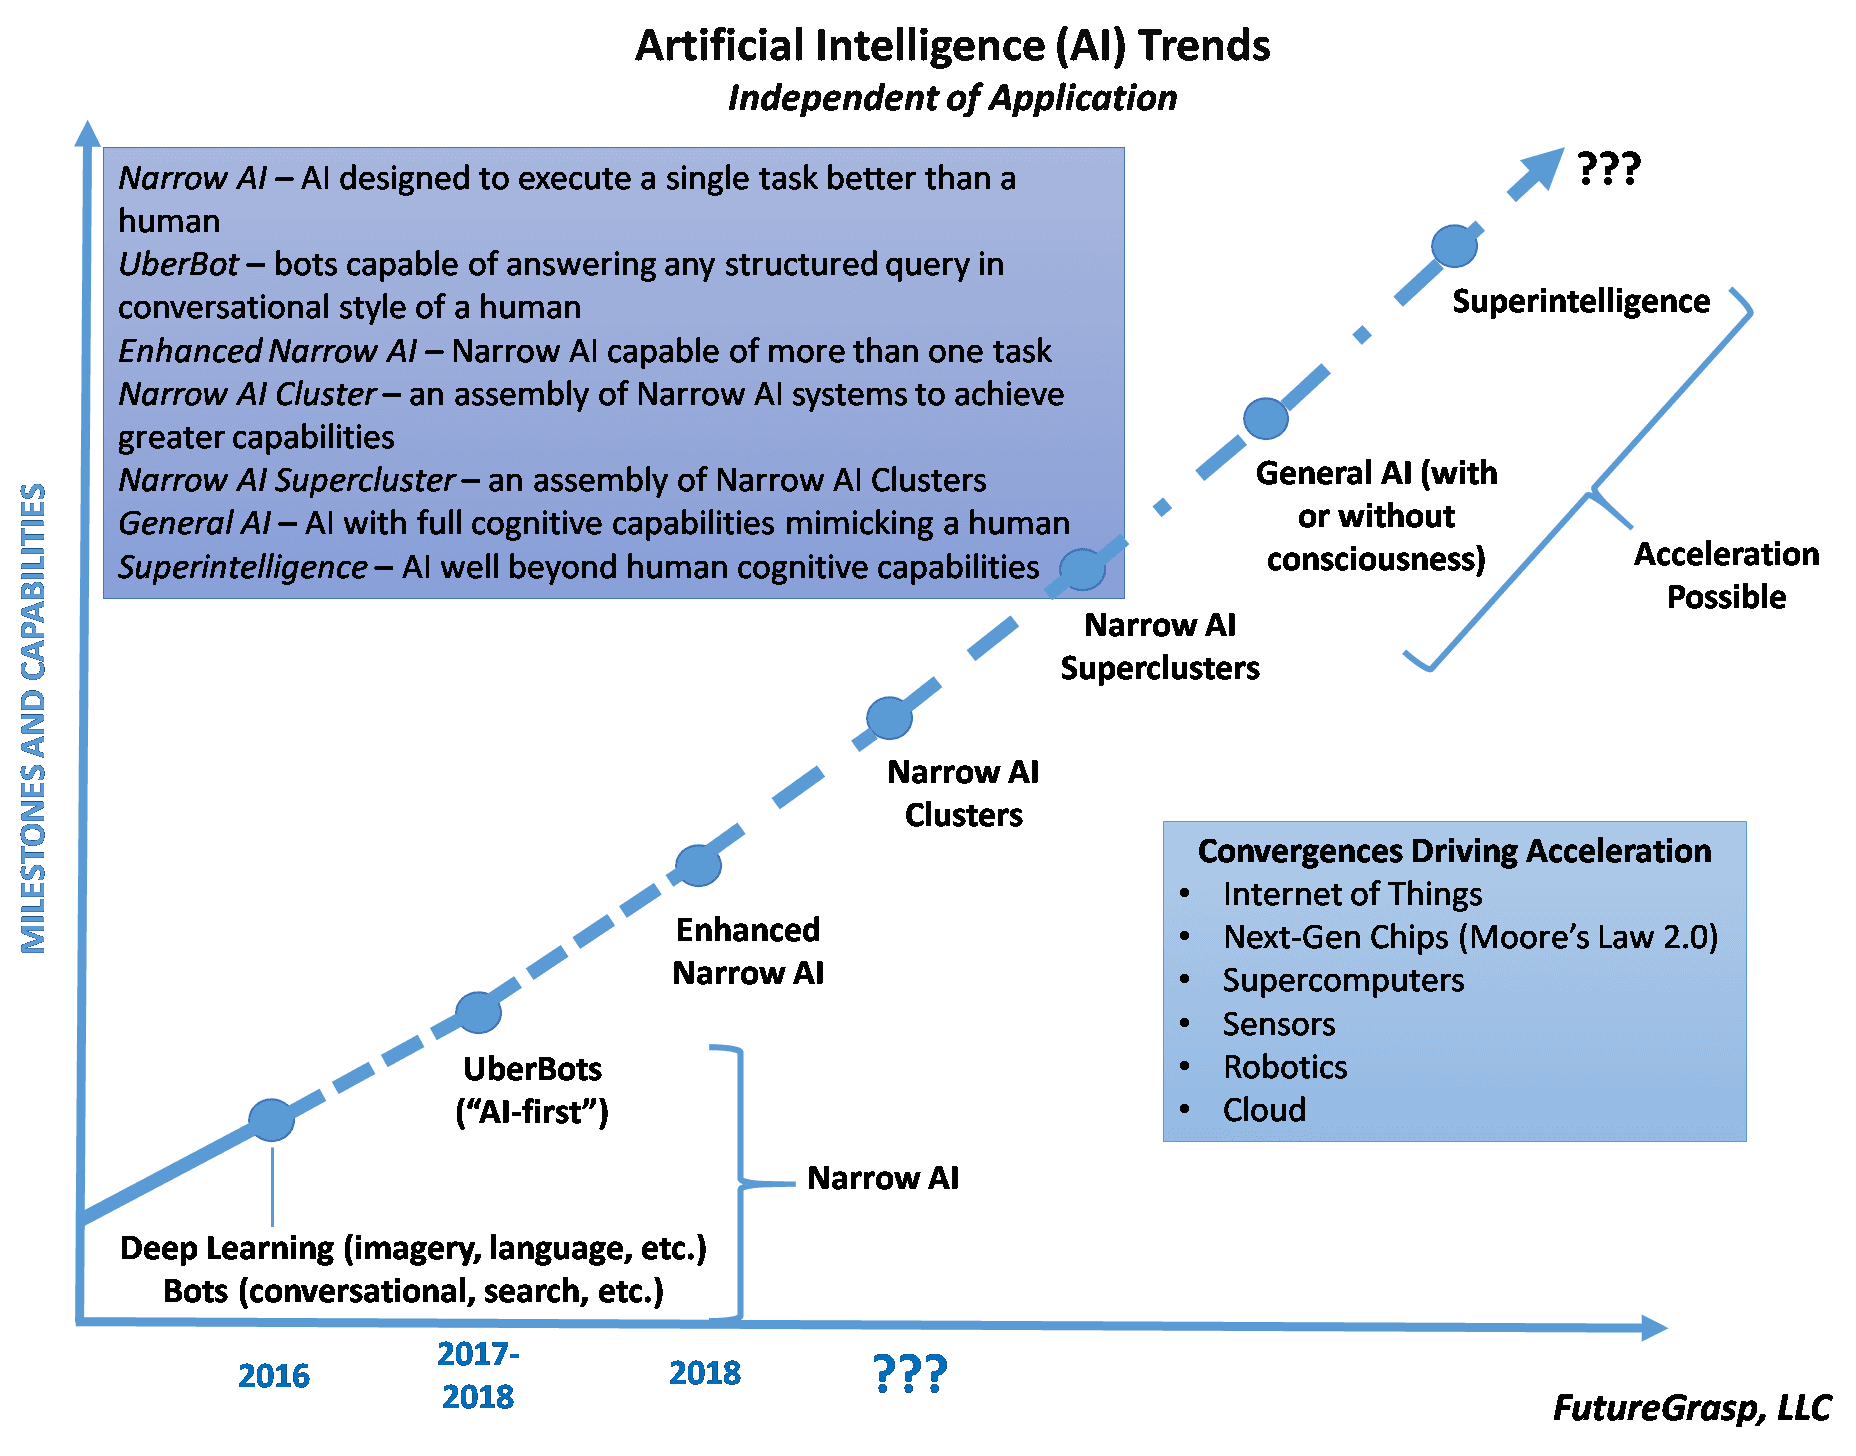 Kardashev Scale Analogy Long Term Thinking About Artificial